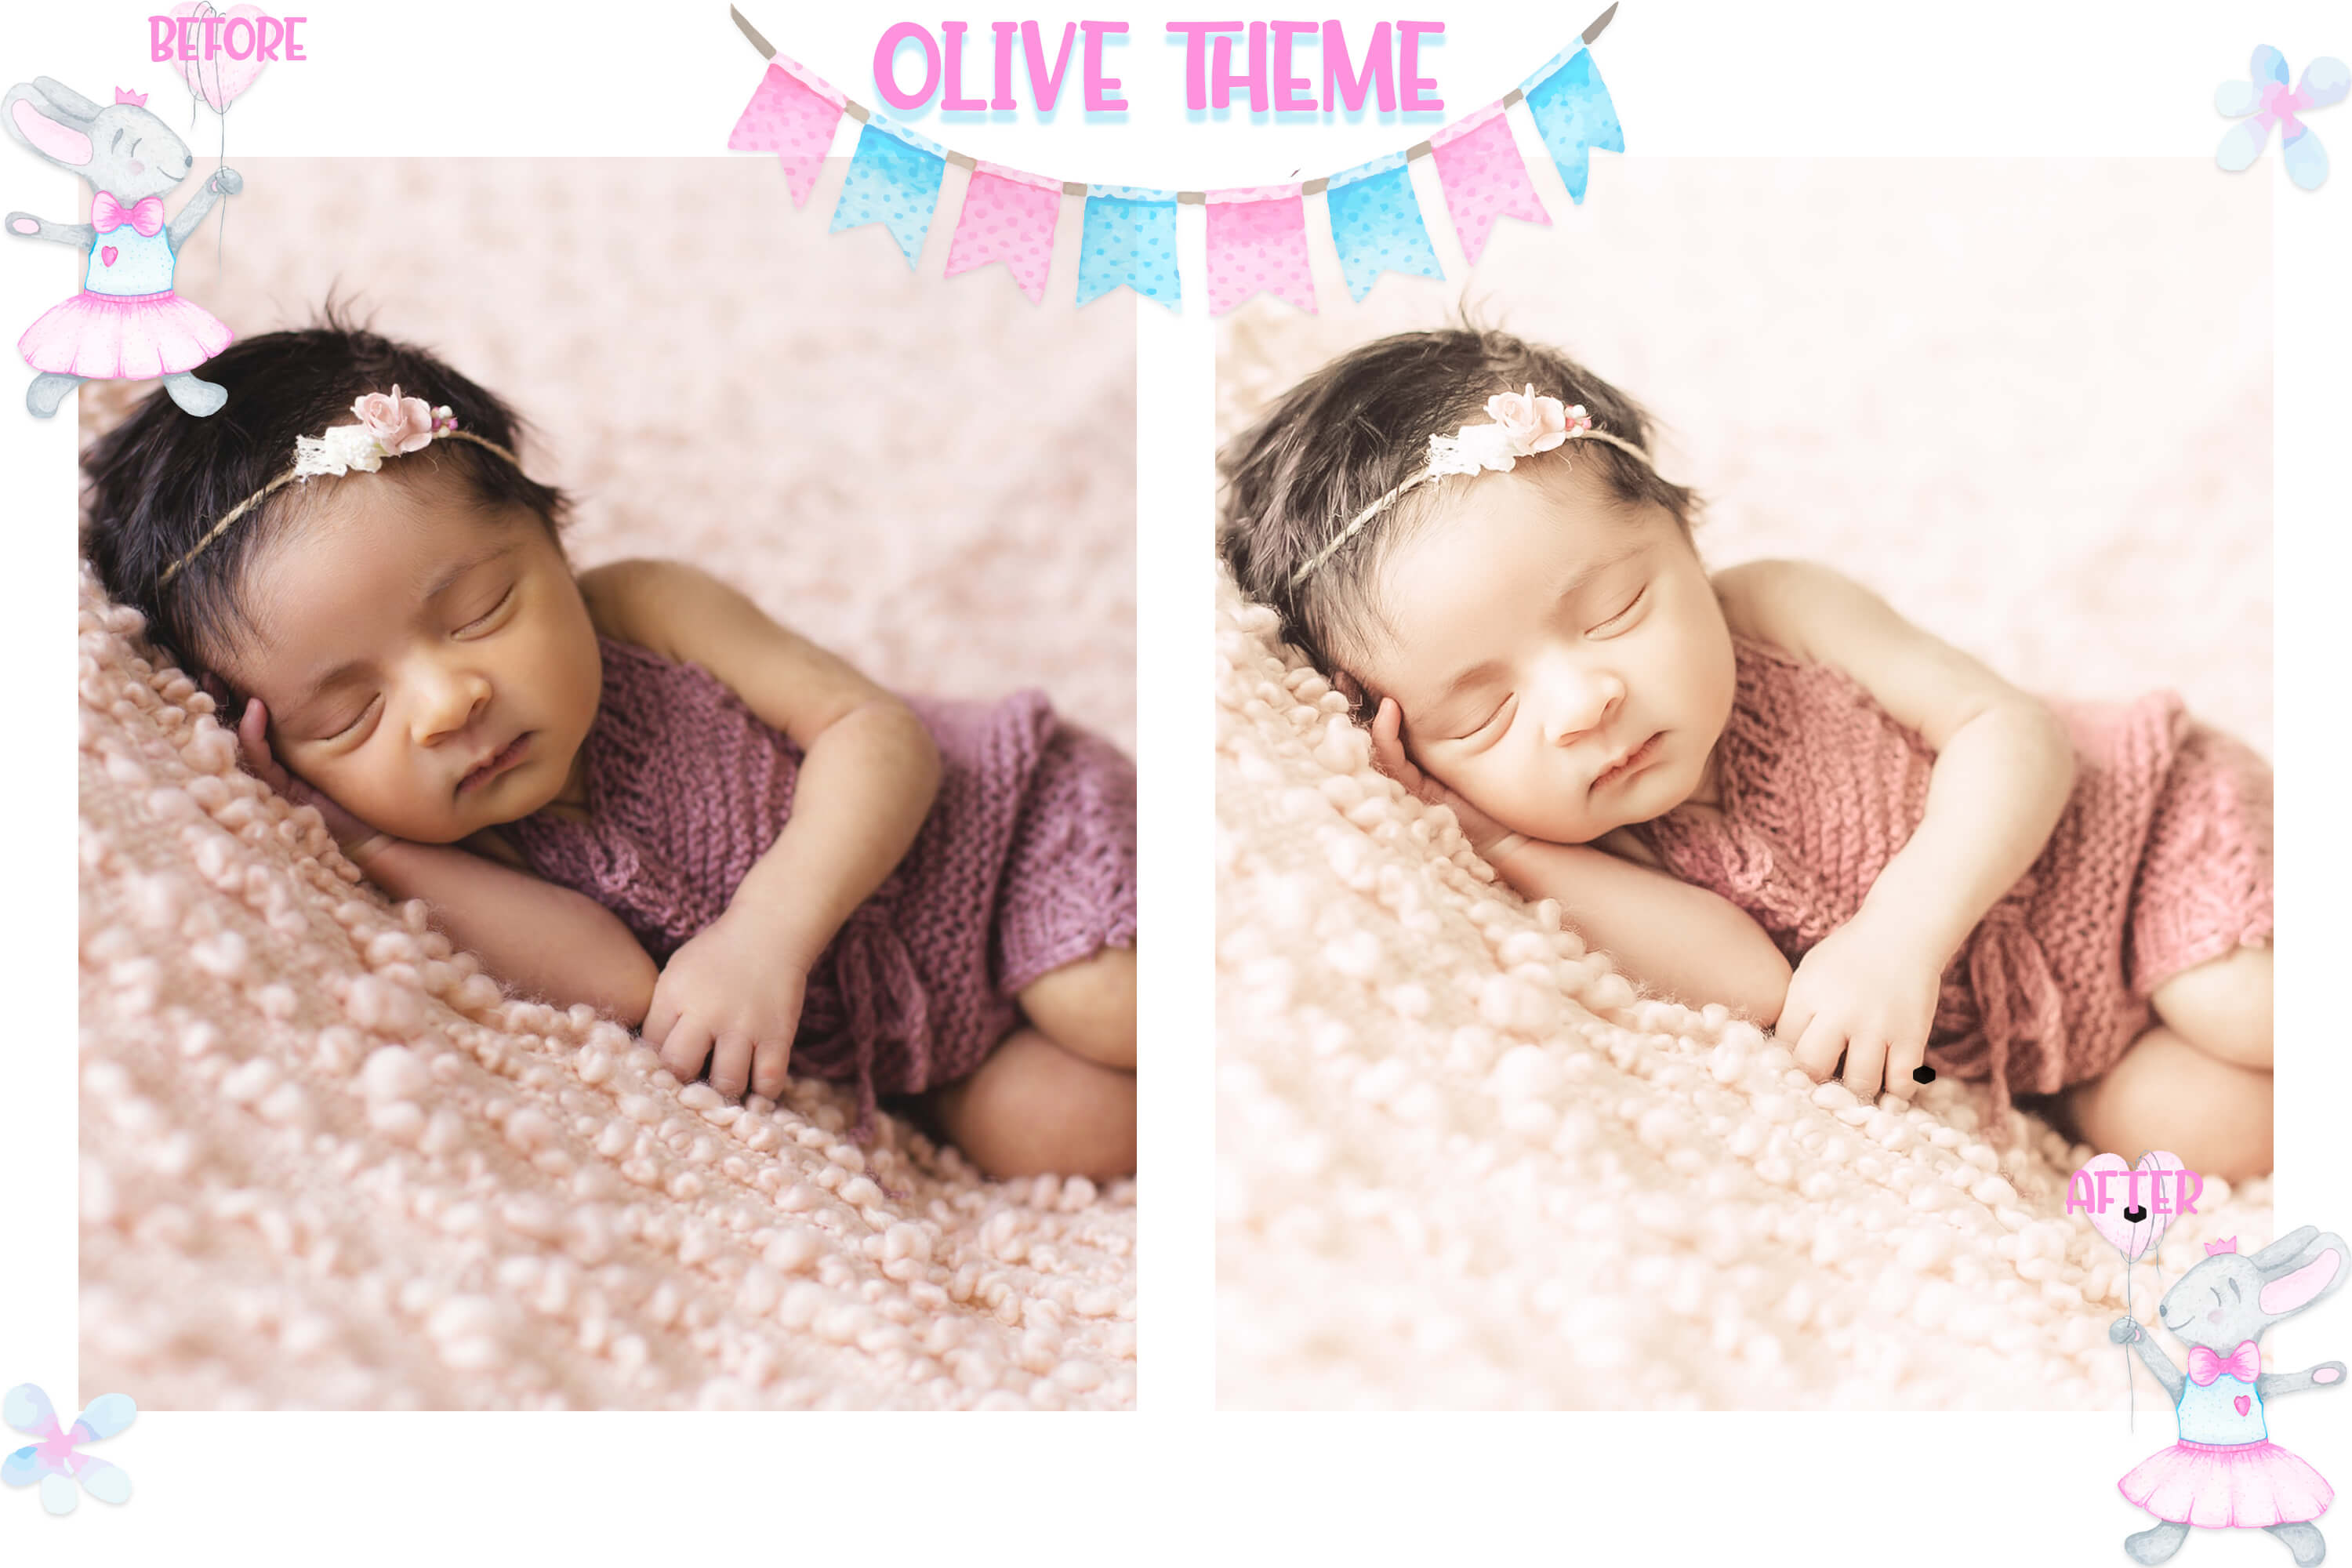 10 Newborn Mobile & Desktop Lightroom Presets, baby skin LR example image 2